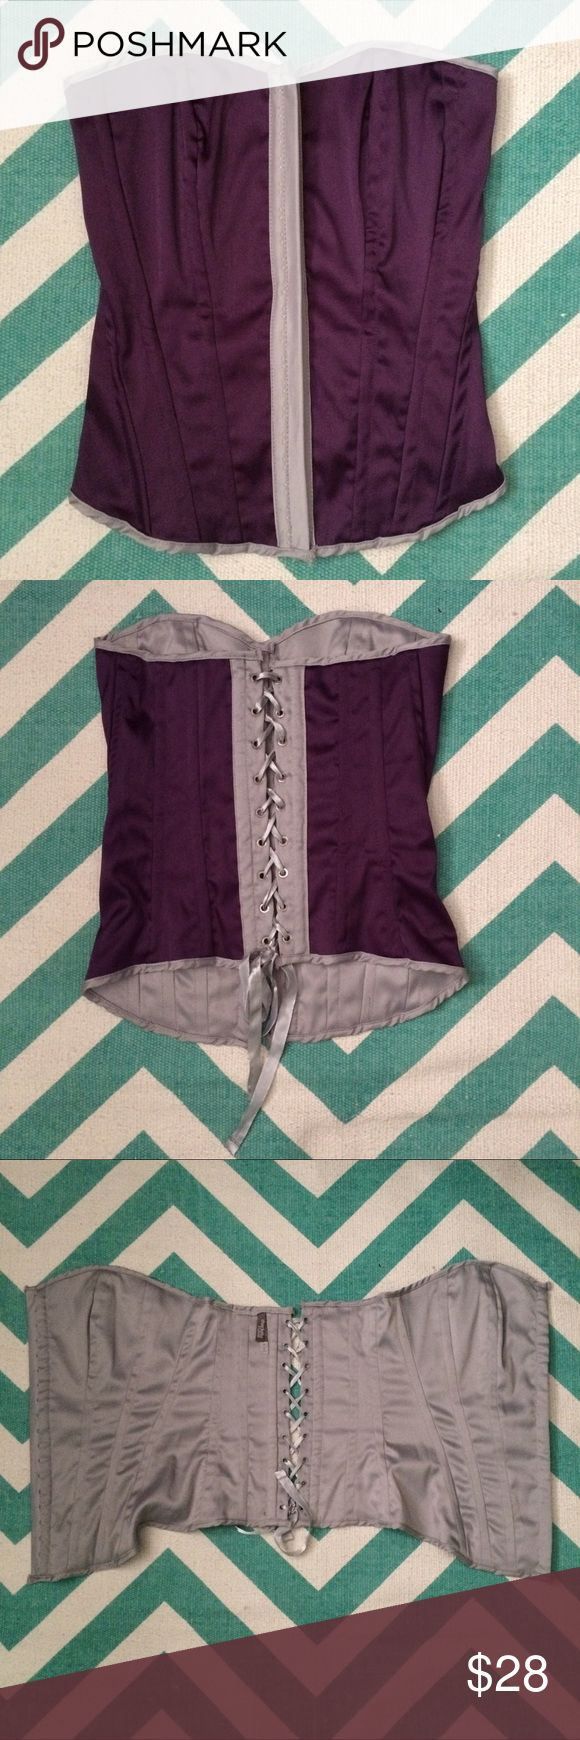 """Purple/Gray Satin-y Corset Dress up your wardrobe with a bit of boudoir style with this lovely purple corset with silver lining. EUC; size Small; worn only once for Steampunk event. When tied and laid flat it measures 12"""" at bust and 11"""" at smallest part of waist. Made of polyester/spandex blend. I am a 33"""", small B cup, petite with semi-athletic build and this fit wonderfully. Bundle or grab this up today! Charlotte Russe Intimates & Sleepwear Shapewear"""